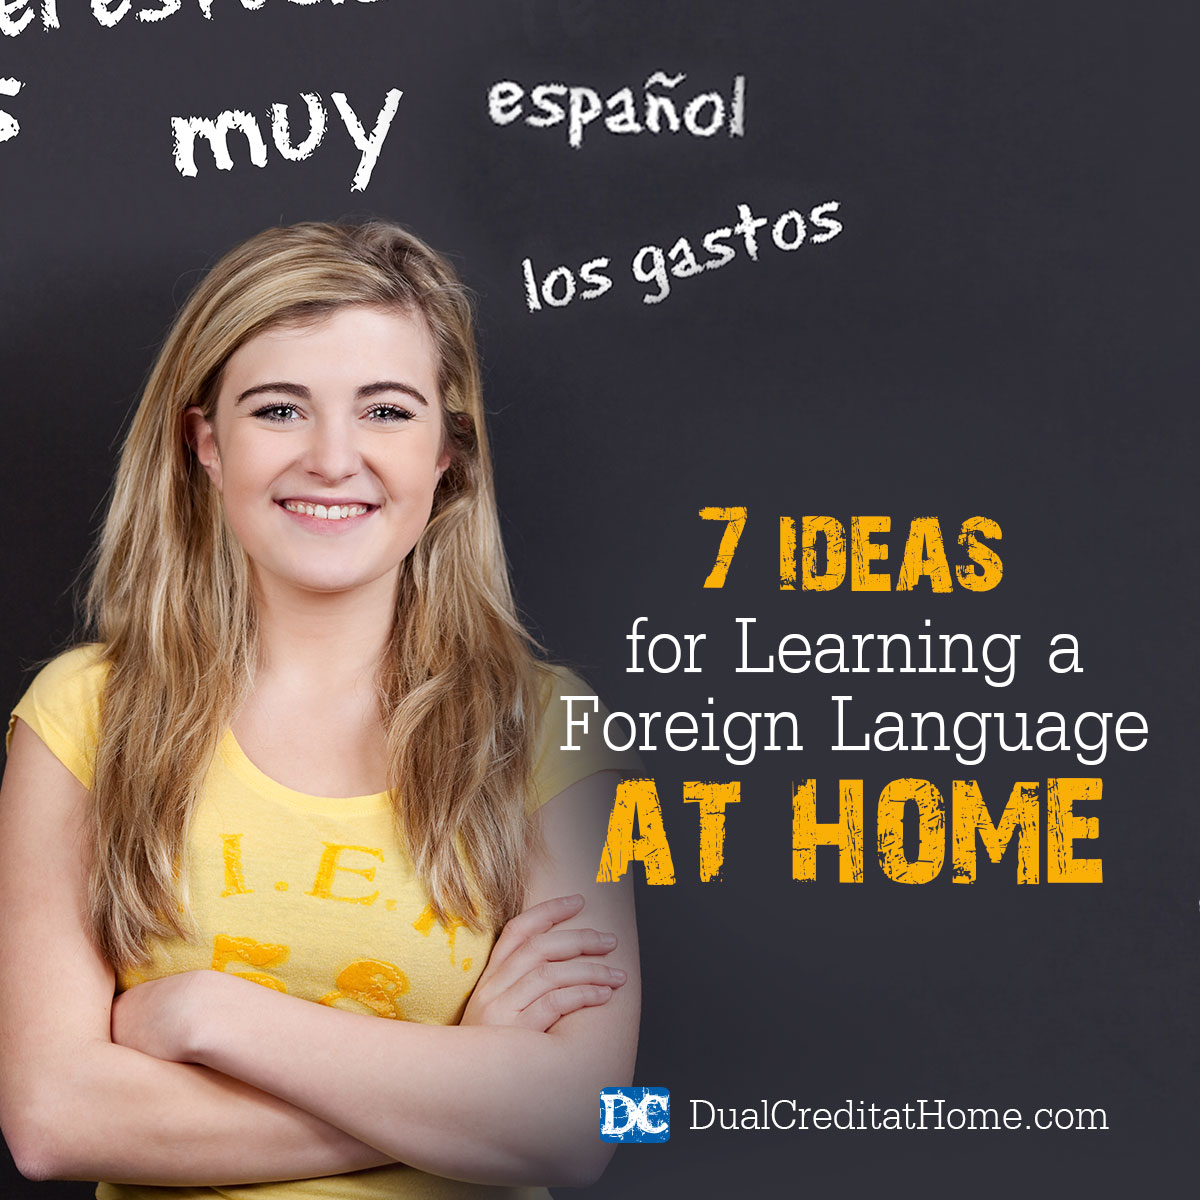 7 Ideas for Learning a Foreign Language at Home